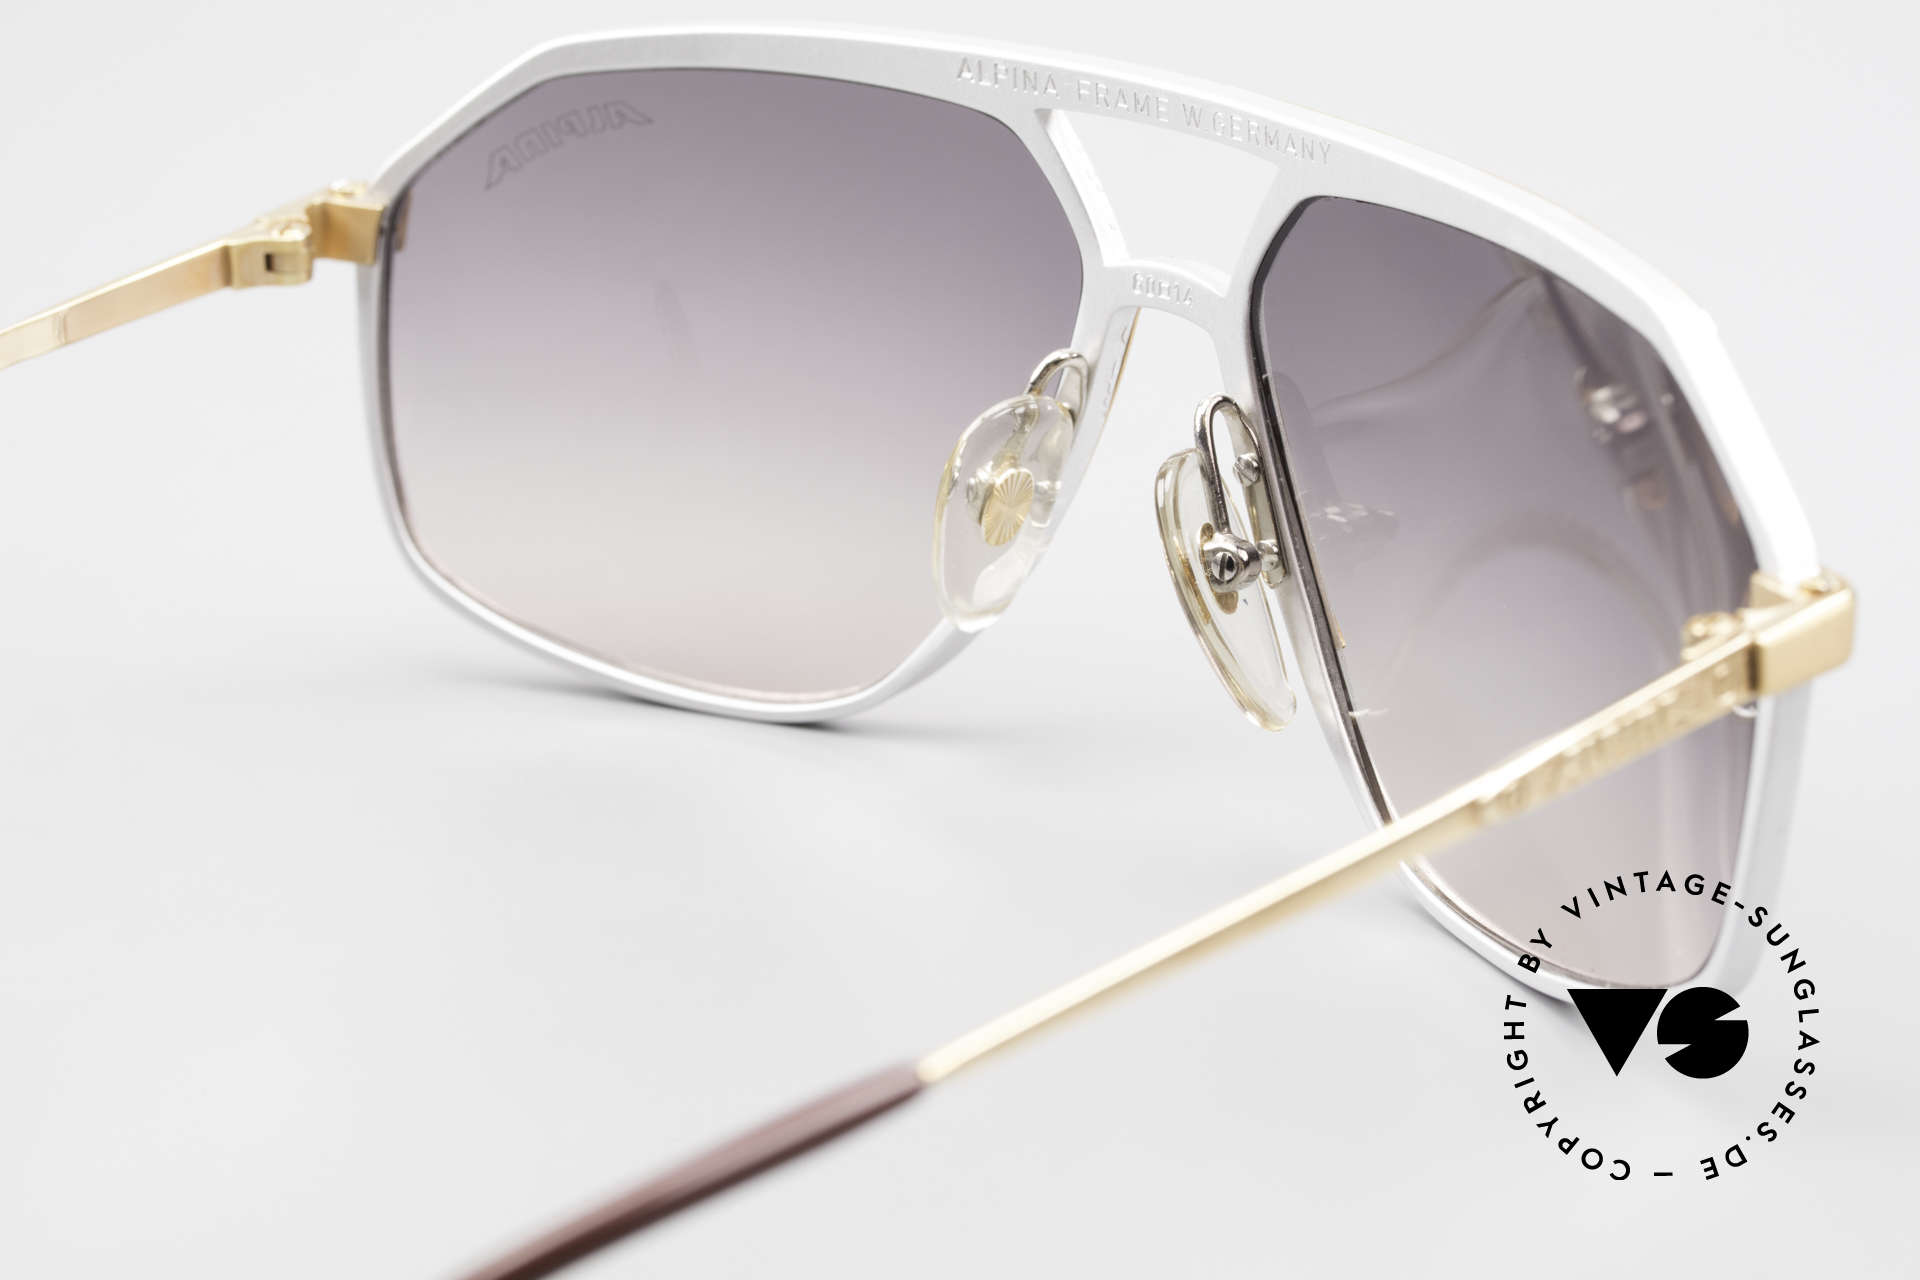 Alpina M6 Vintage Glasses Par Excellence, true rarity and sought-after collector's item, vertu, Made for Men and Women